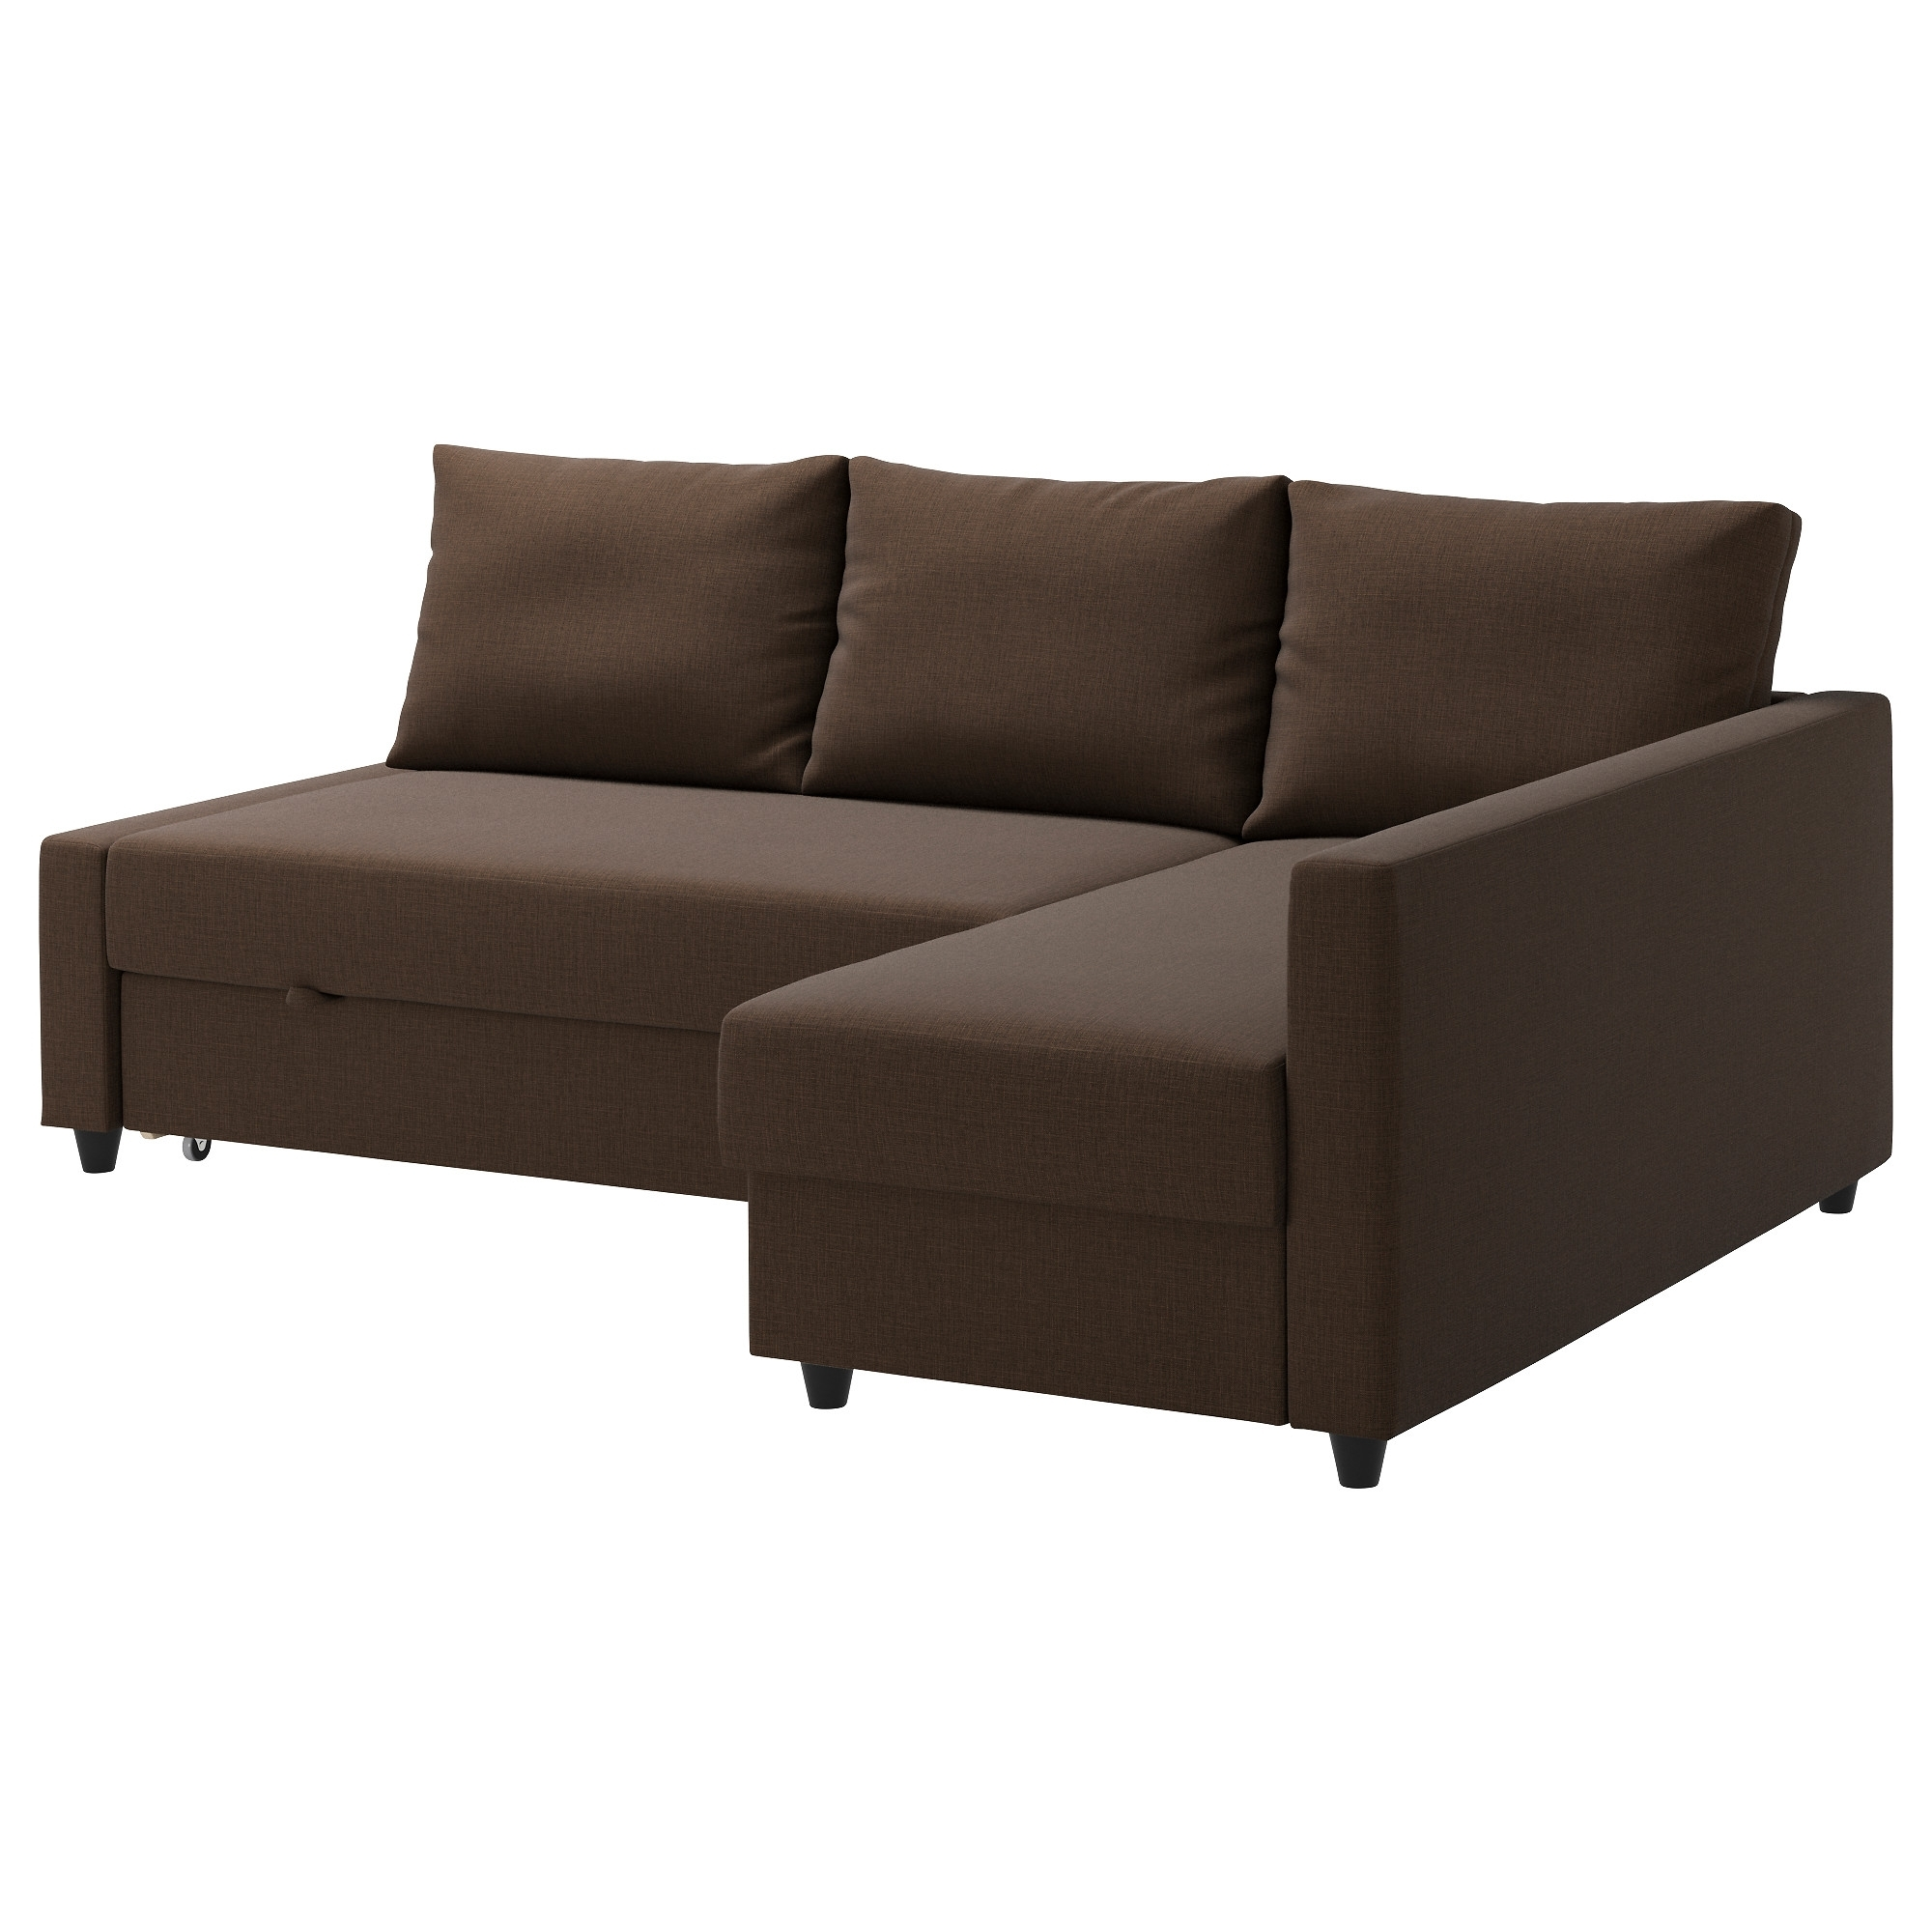 Friheten Corner Sofa-Bed With Storage Skiftebo Brown - Ikea for Ikea Corner Sofas With Storage (Image 6 of 10)